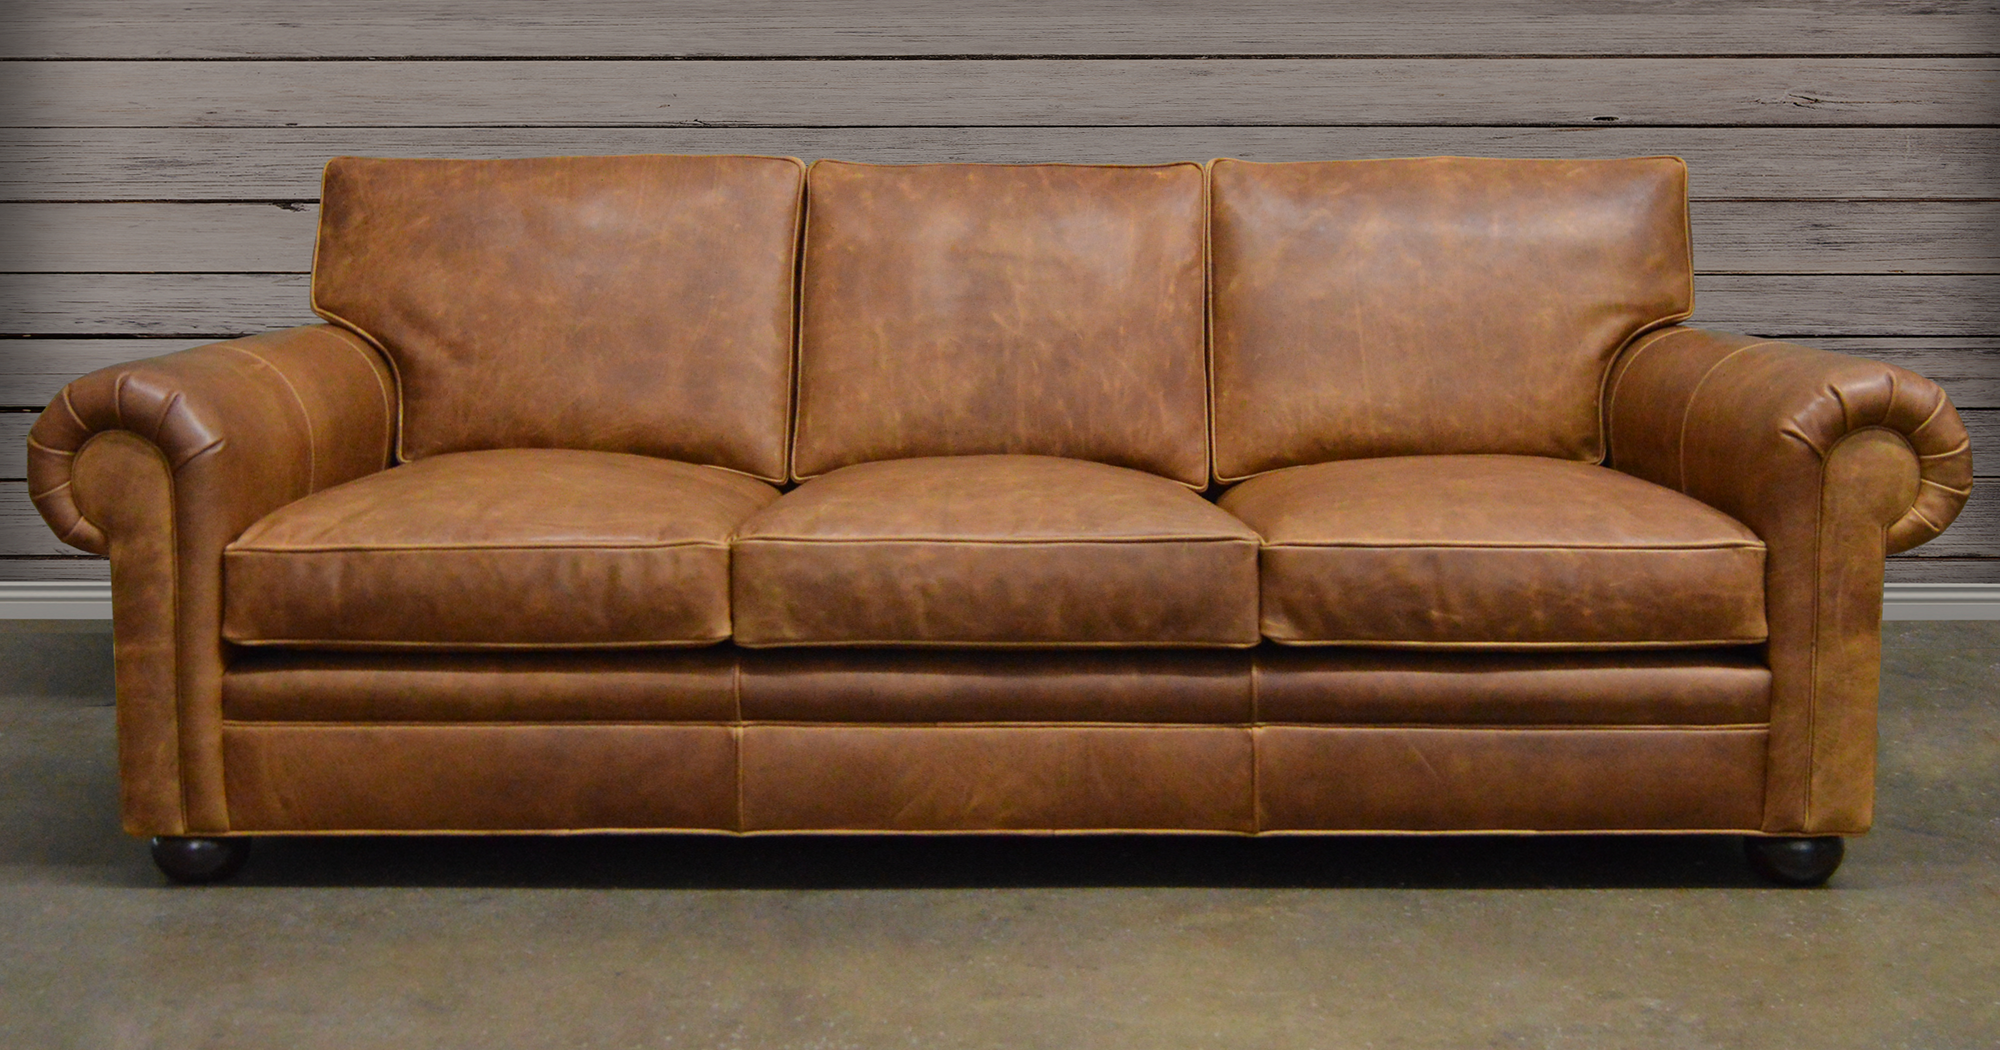 American made leather furniture leather sofas leather for Leather furniture